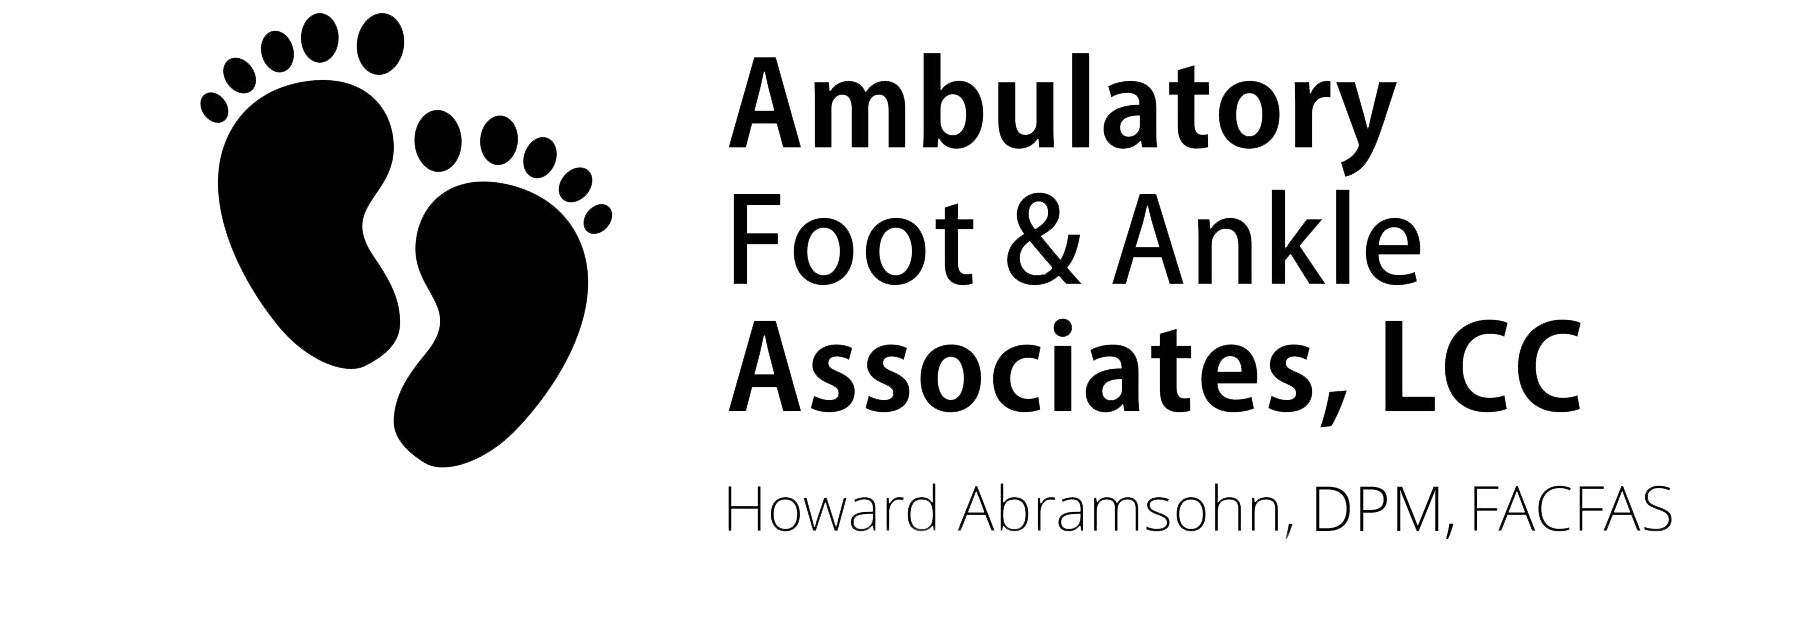 Ambulatory Foot and Ankle Associates, LLC